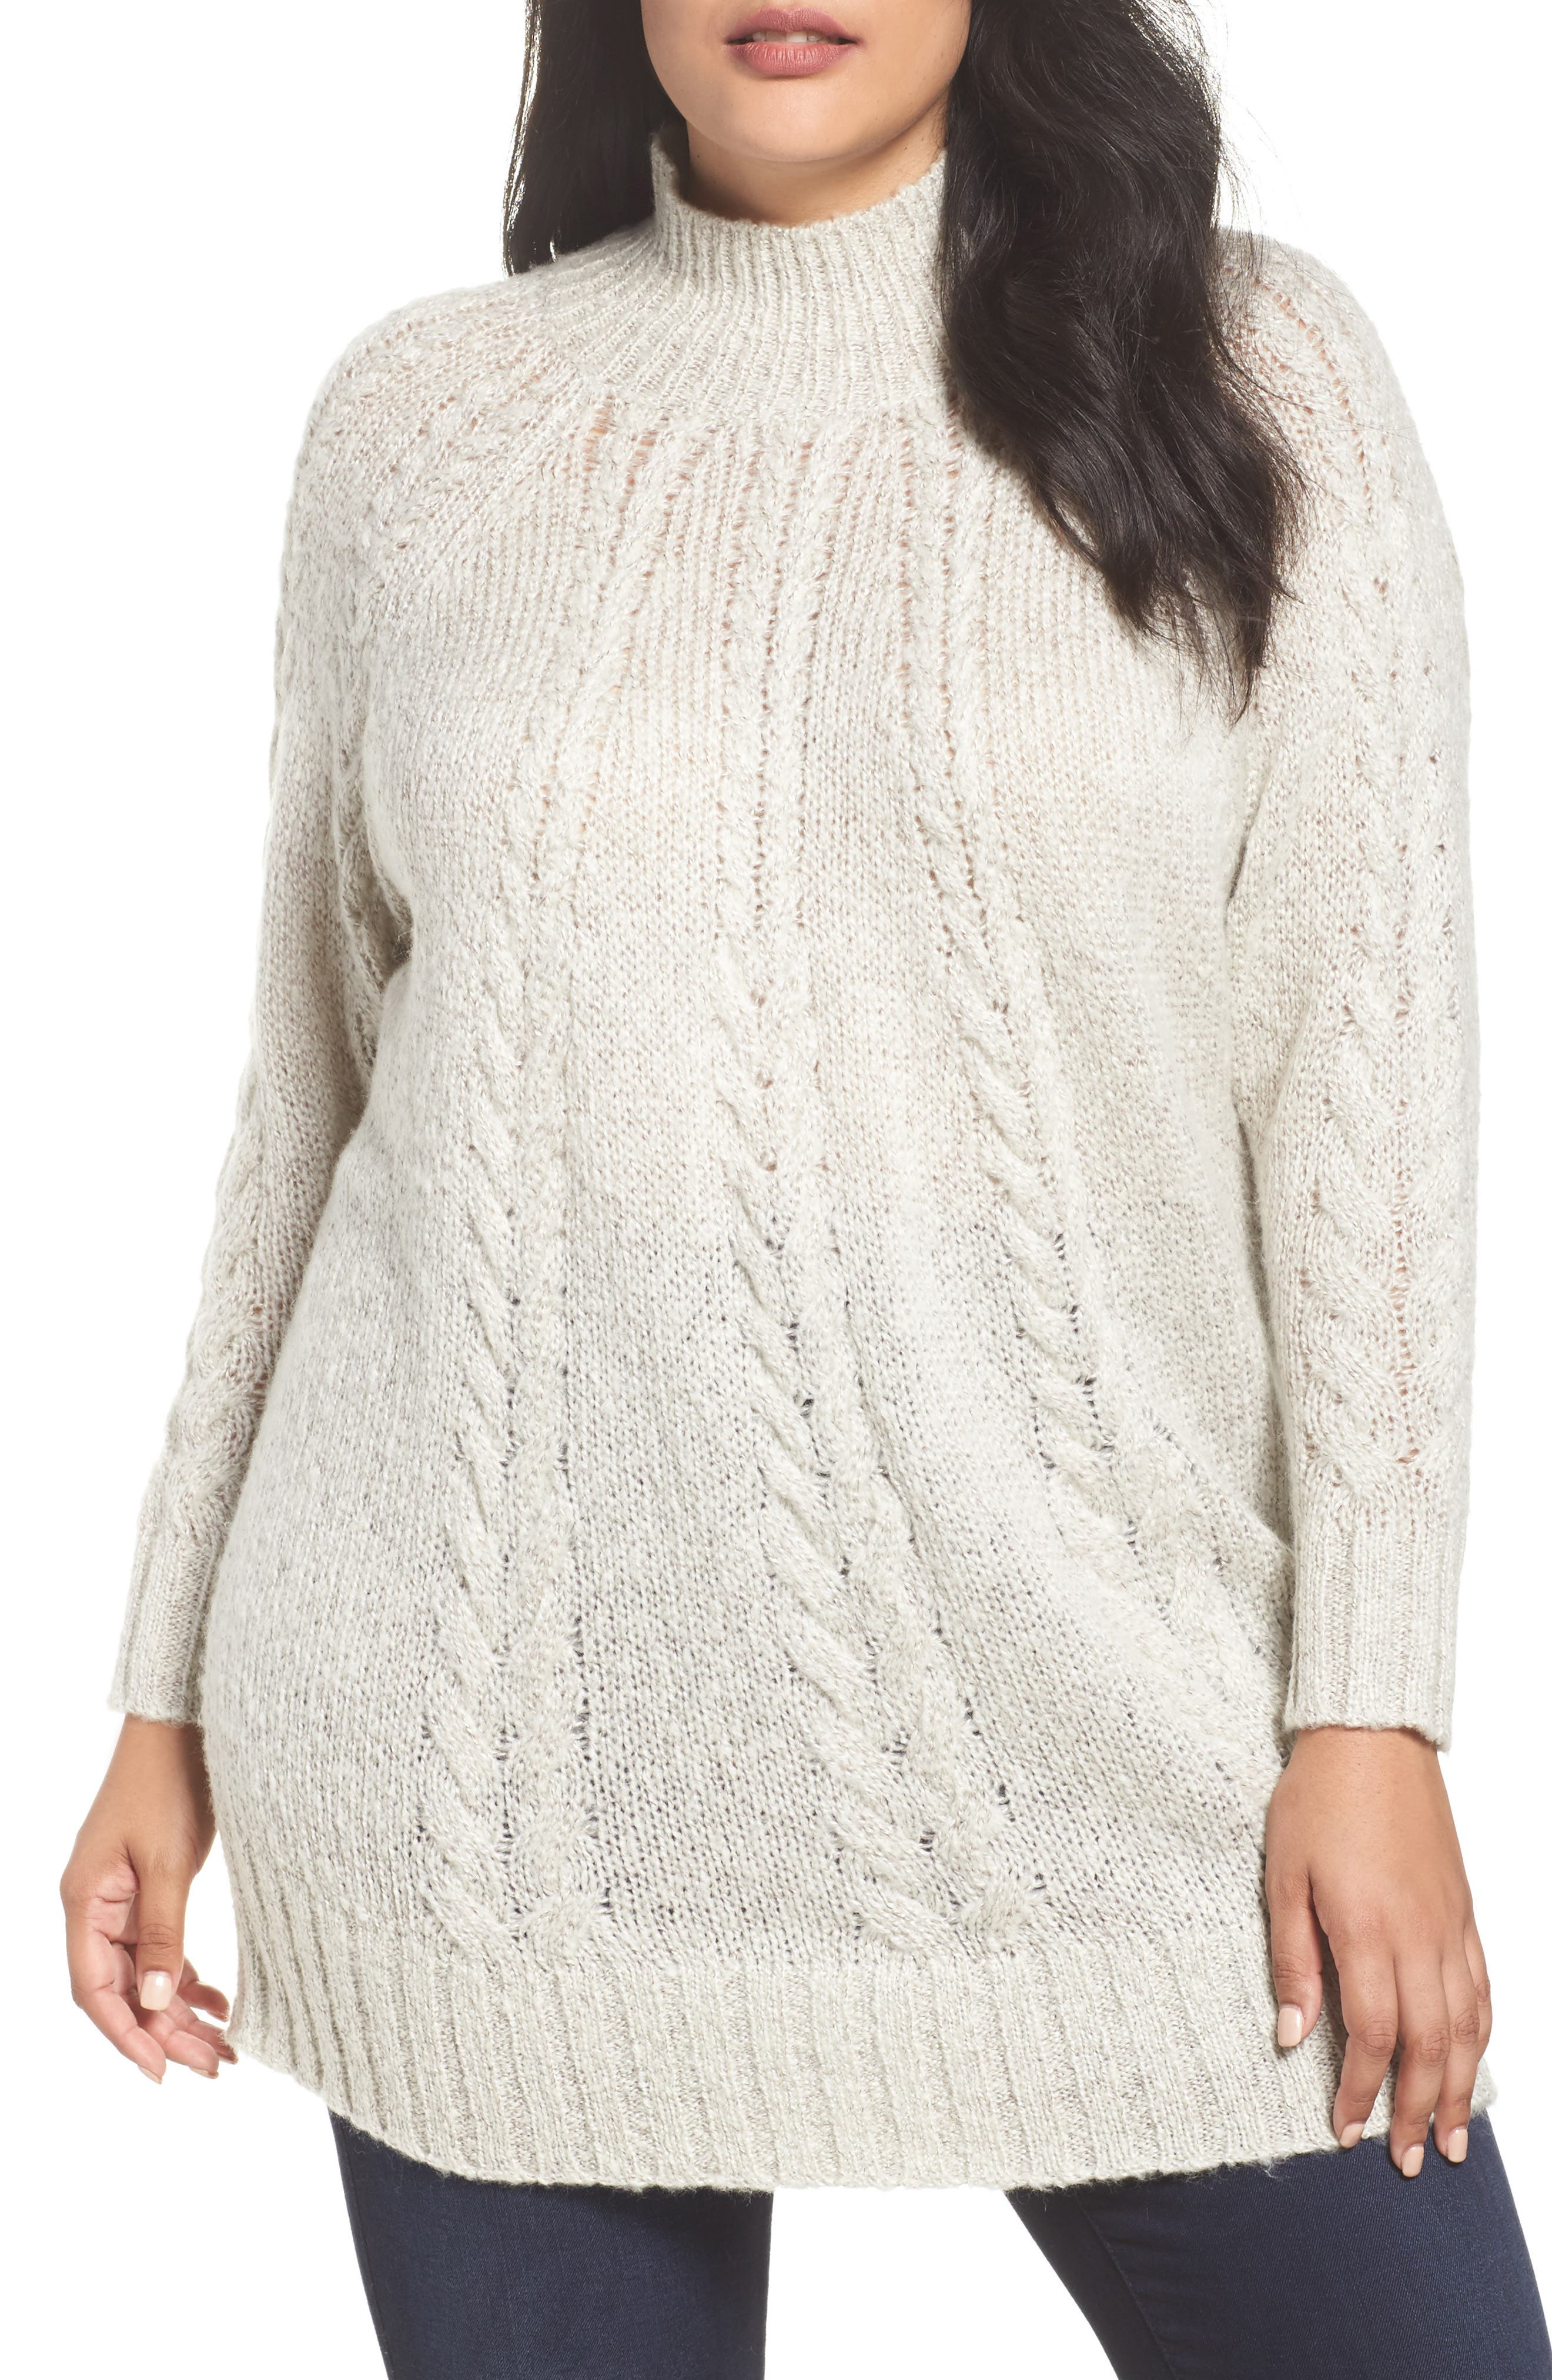 Cable Knit Tunic Sweater,                         Main,                         color, Oatmeal